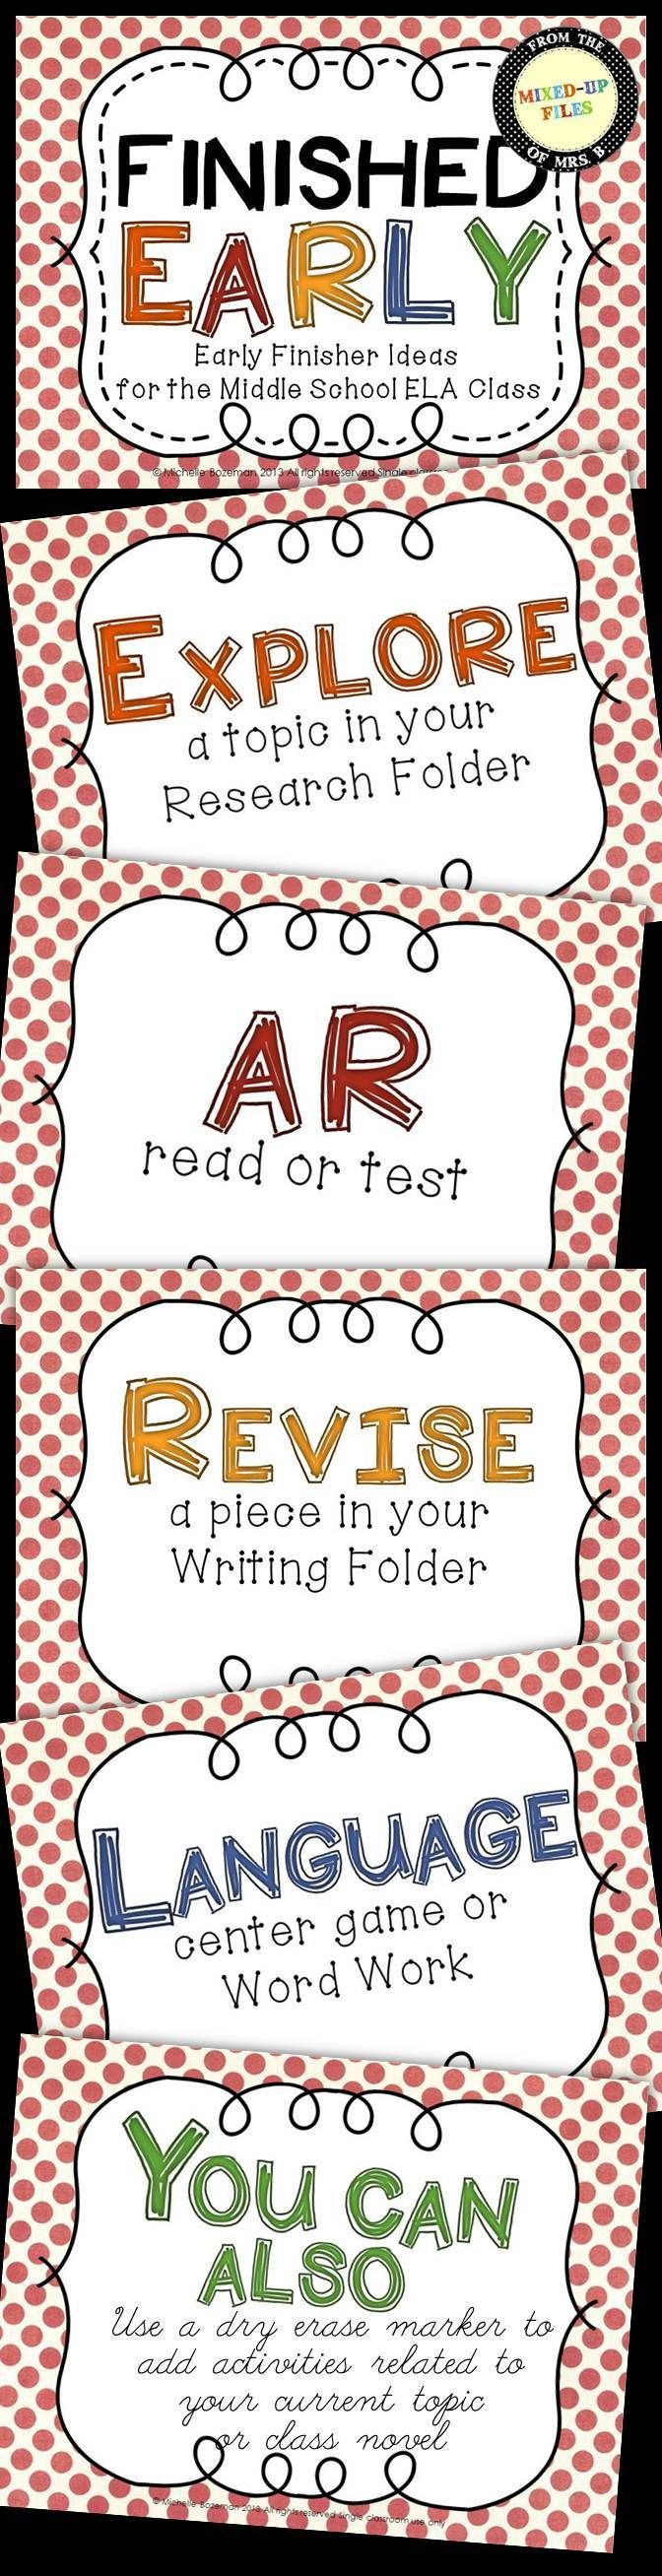 Early Finisher Ideas for the Middle School ELA Classroom -- FREE poster set -- Updated with pretty, new fonts and background colors -- Click to see the new look! -- from Mixed-Up Files